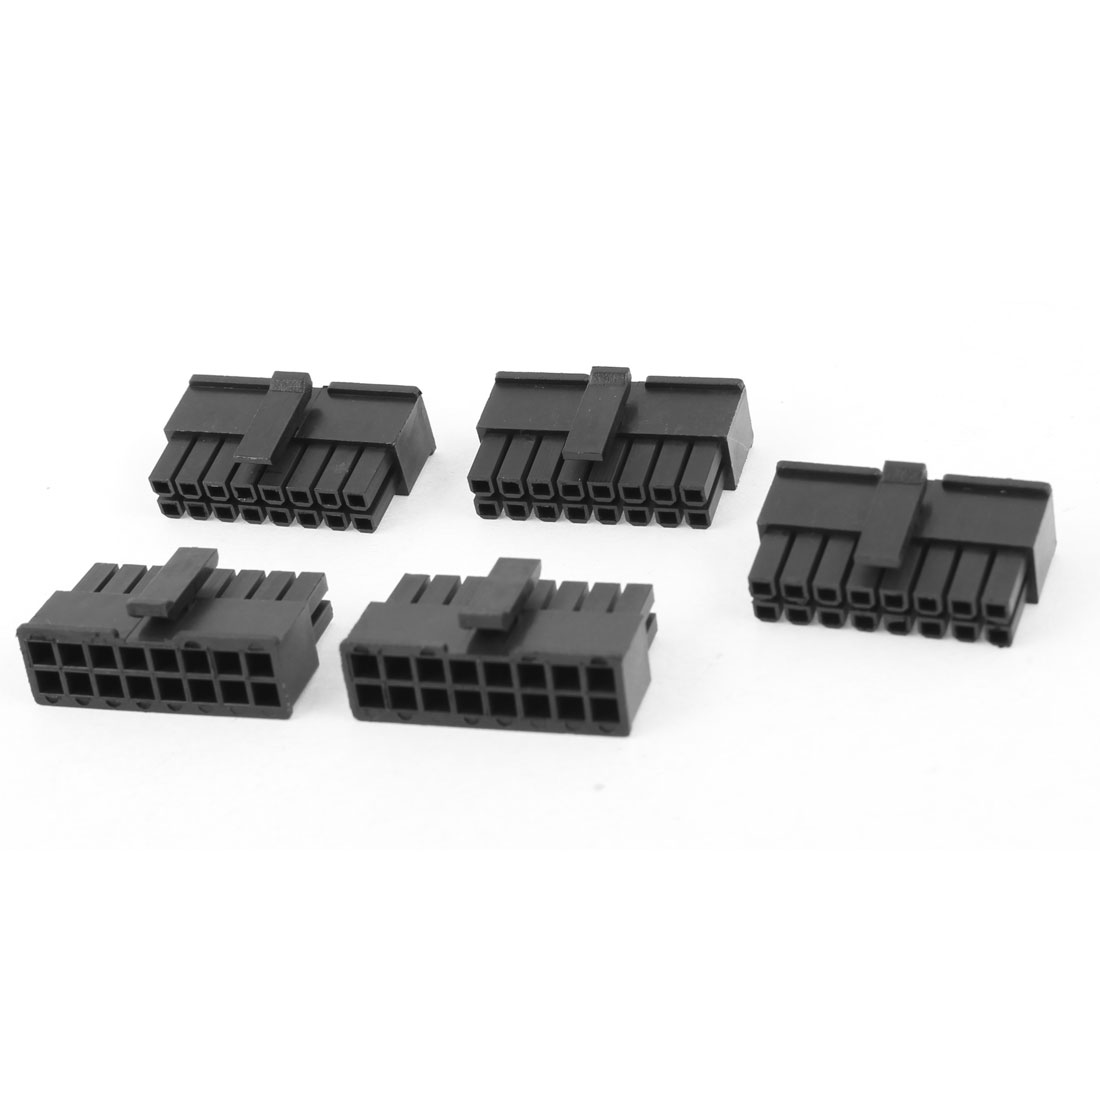 5 Pcs 16 Pin Male Slot 3mm Pitch PSU PCB Board Car ATX Connector Black